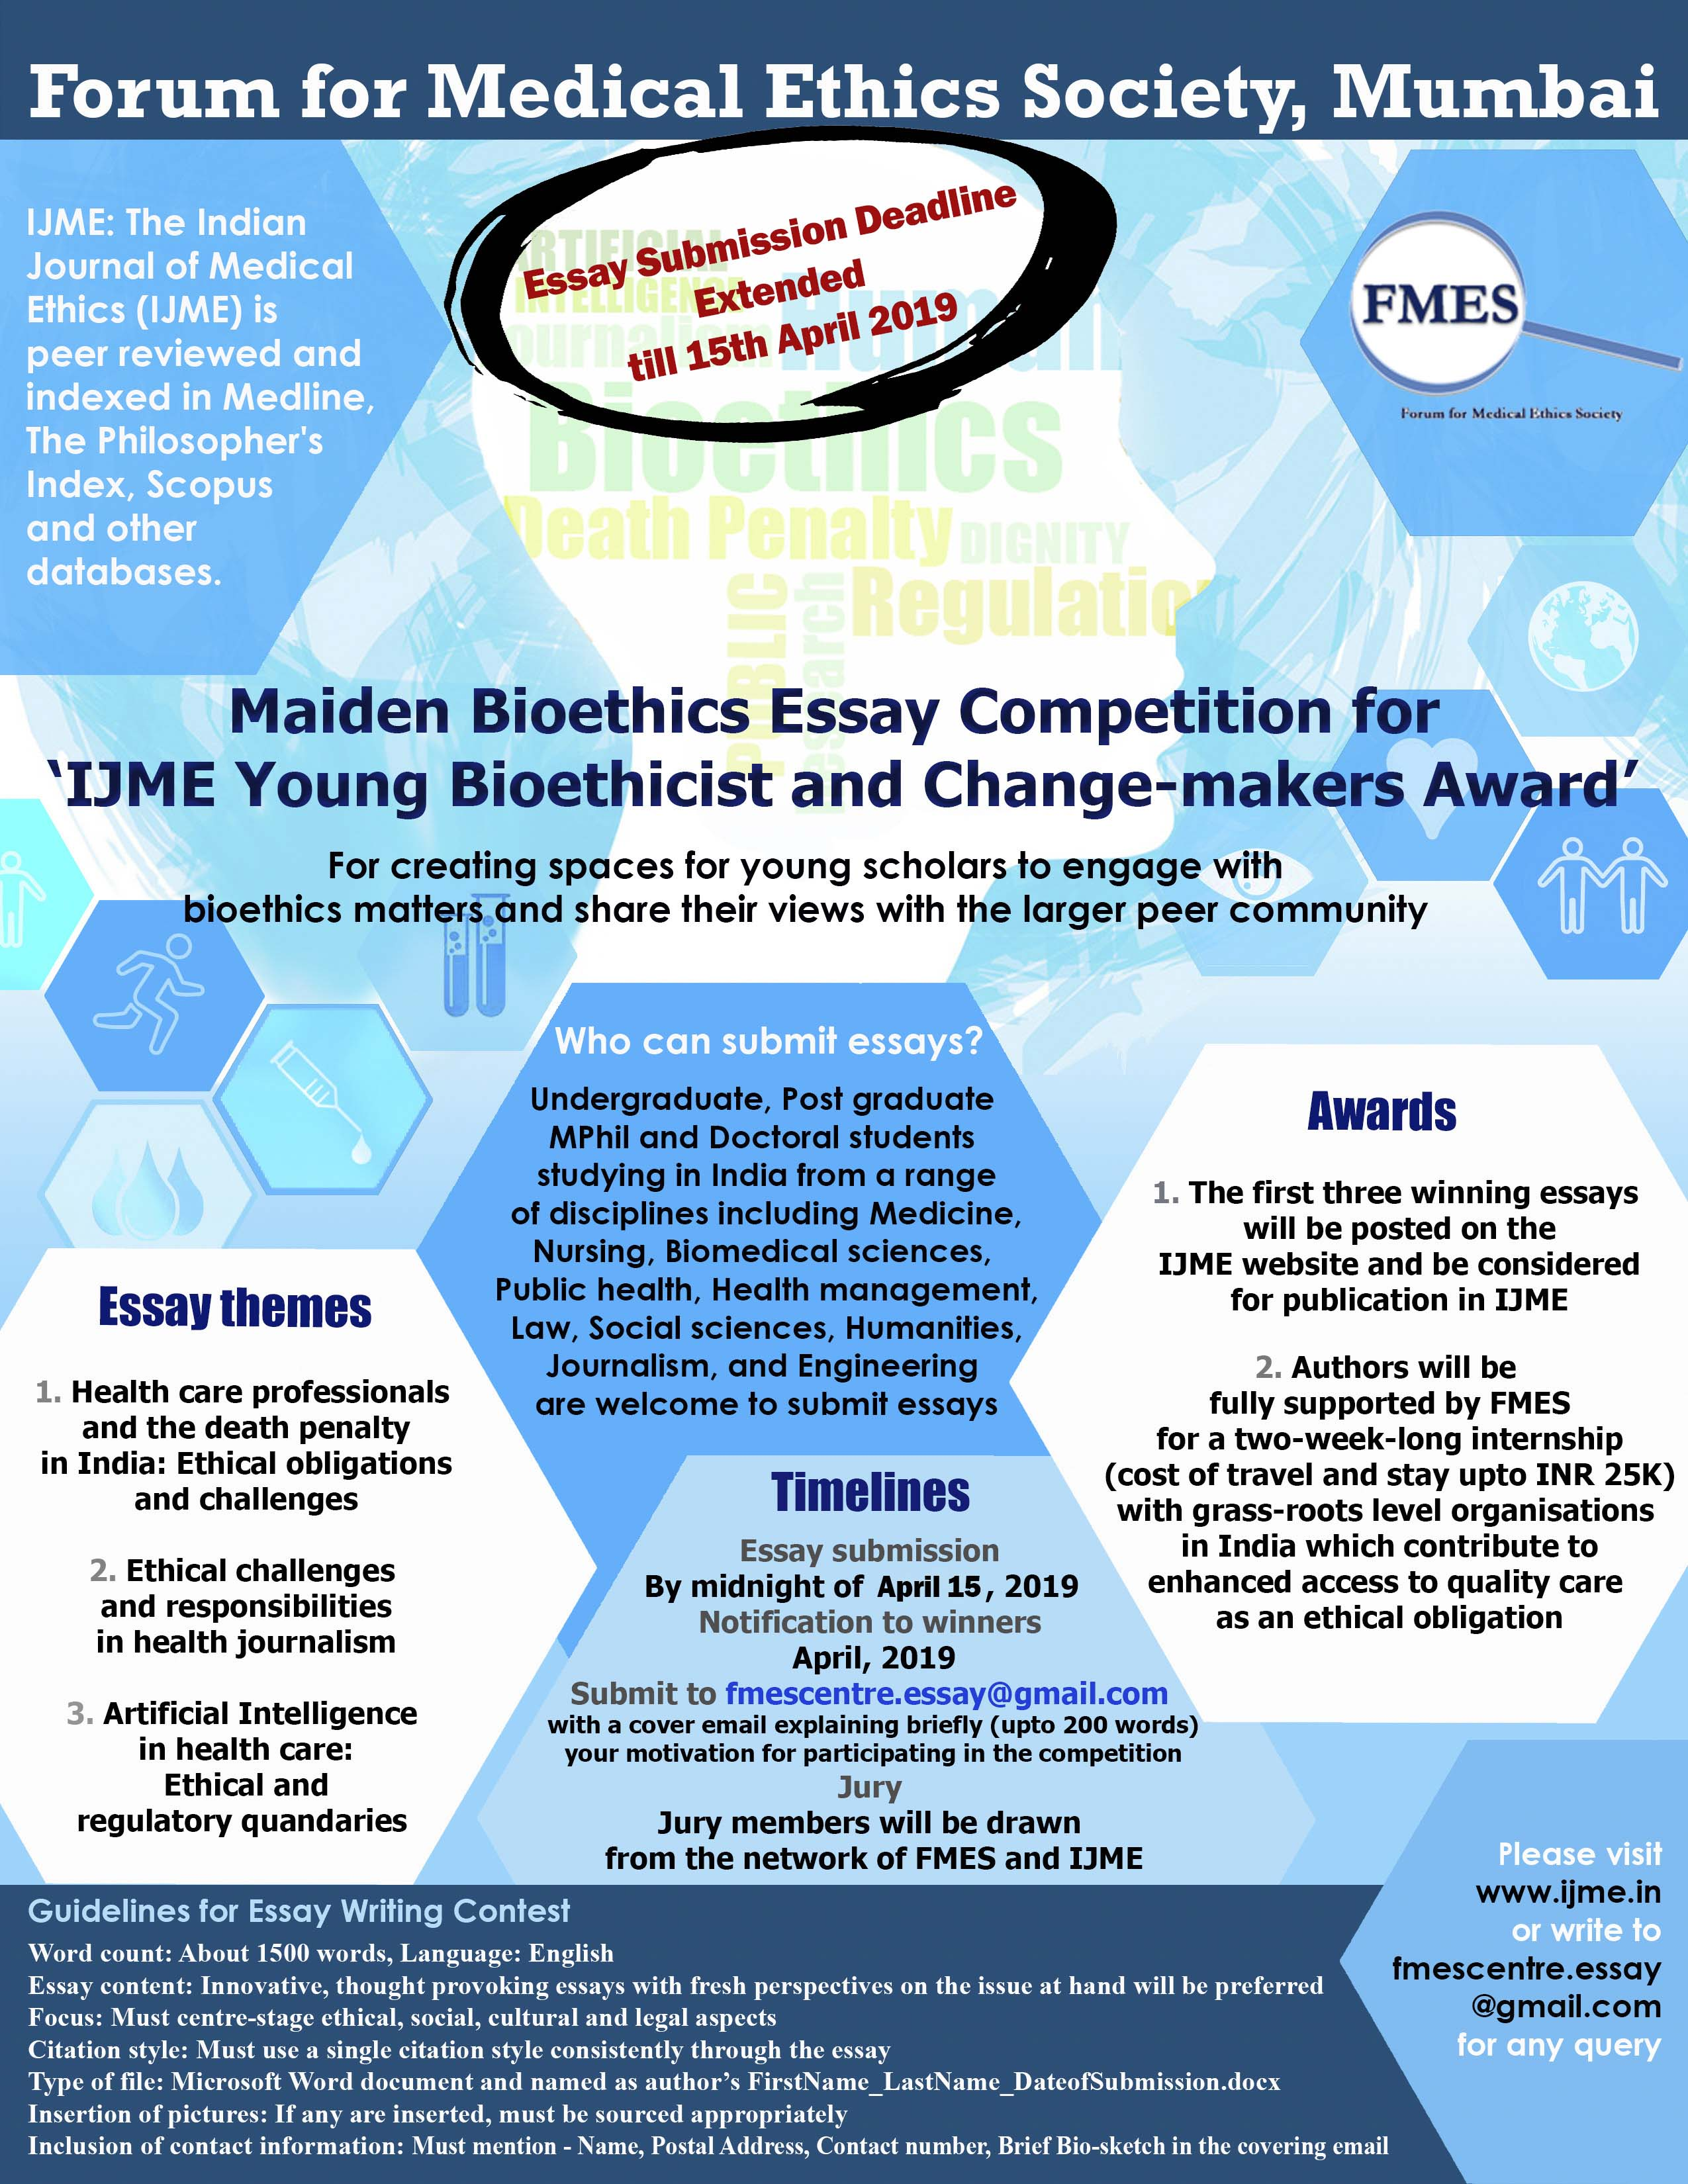 Maiden Bioethics Essay Competition for 'IJME Young